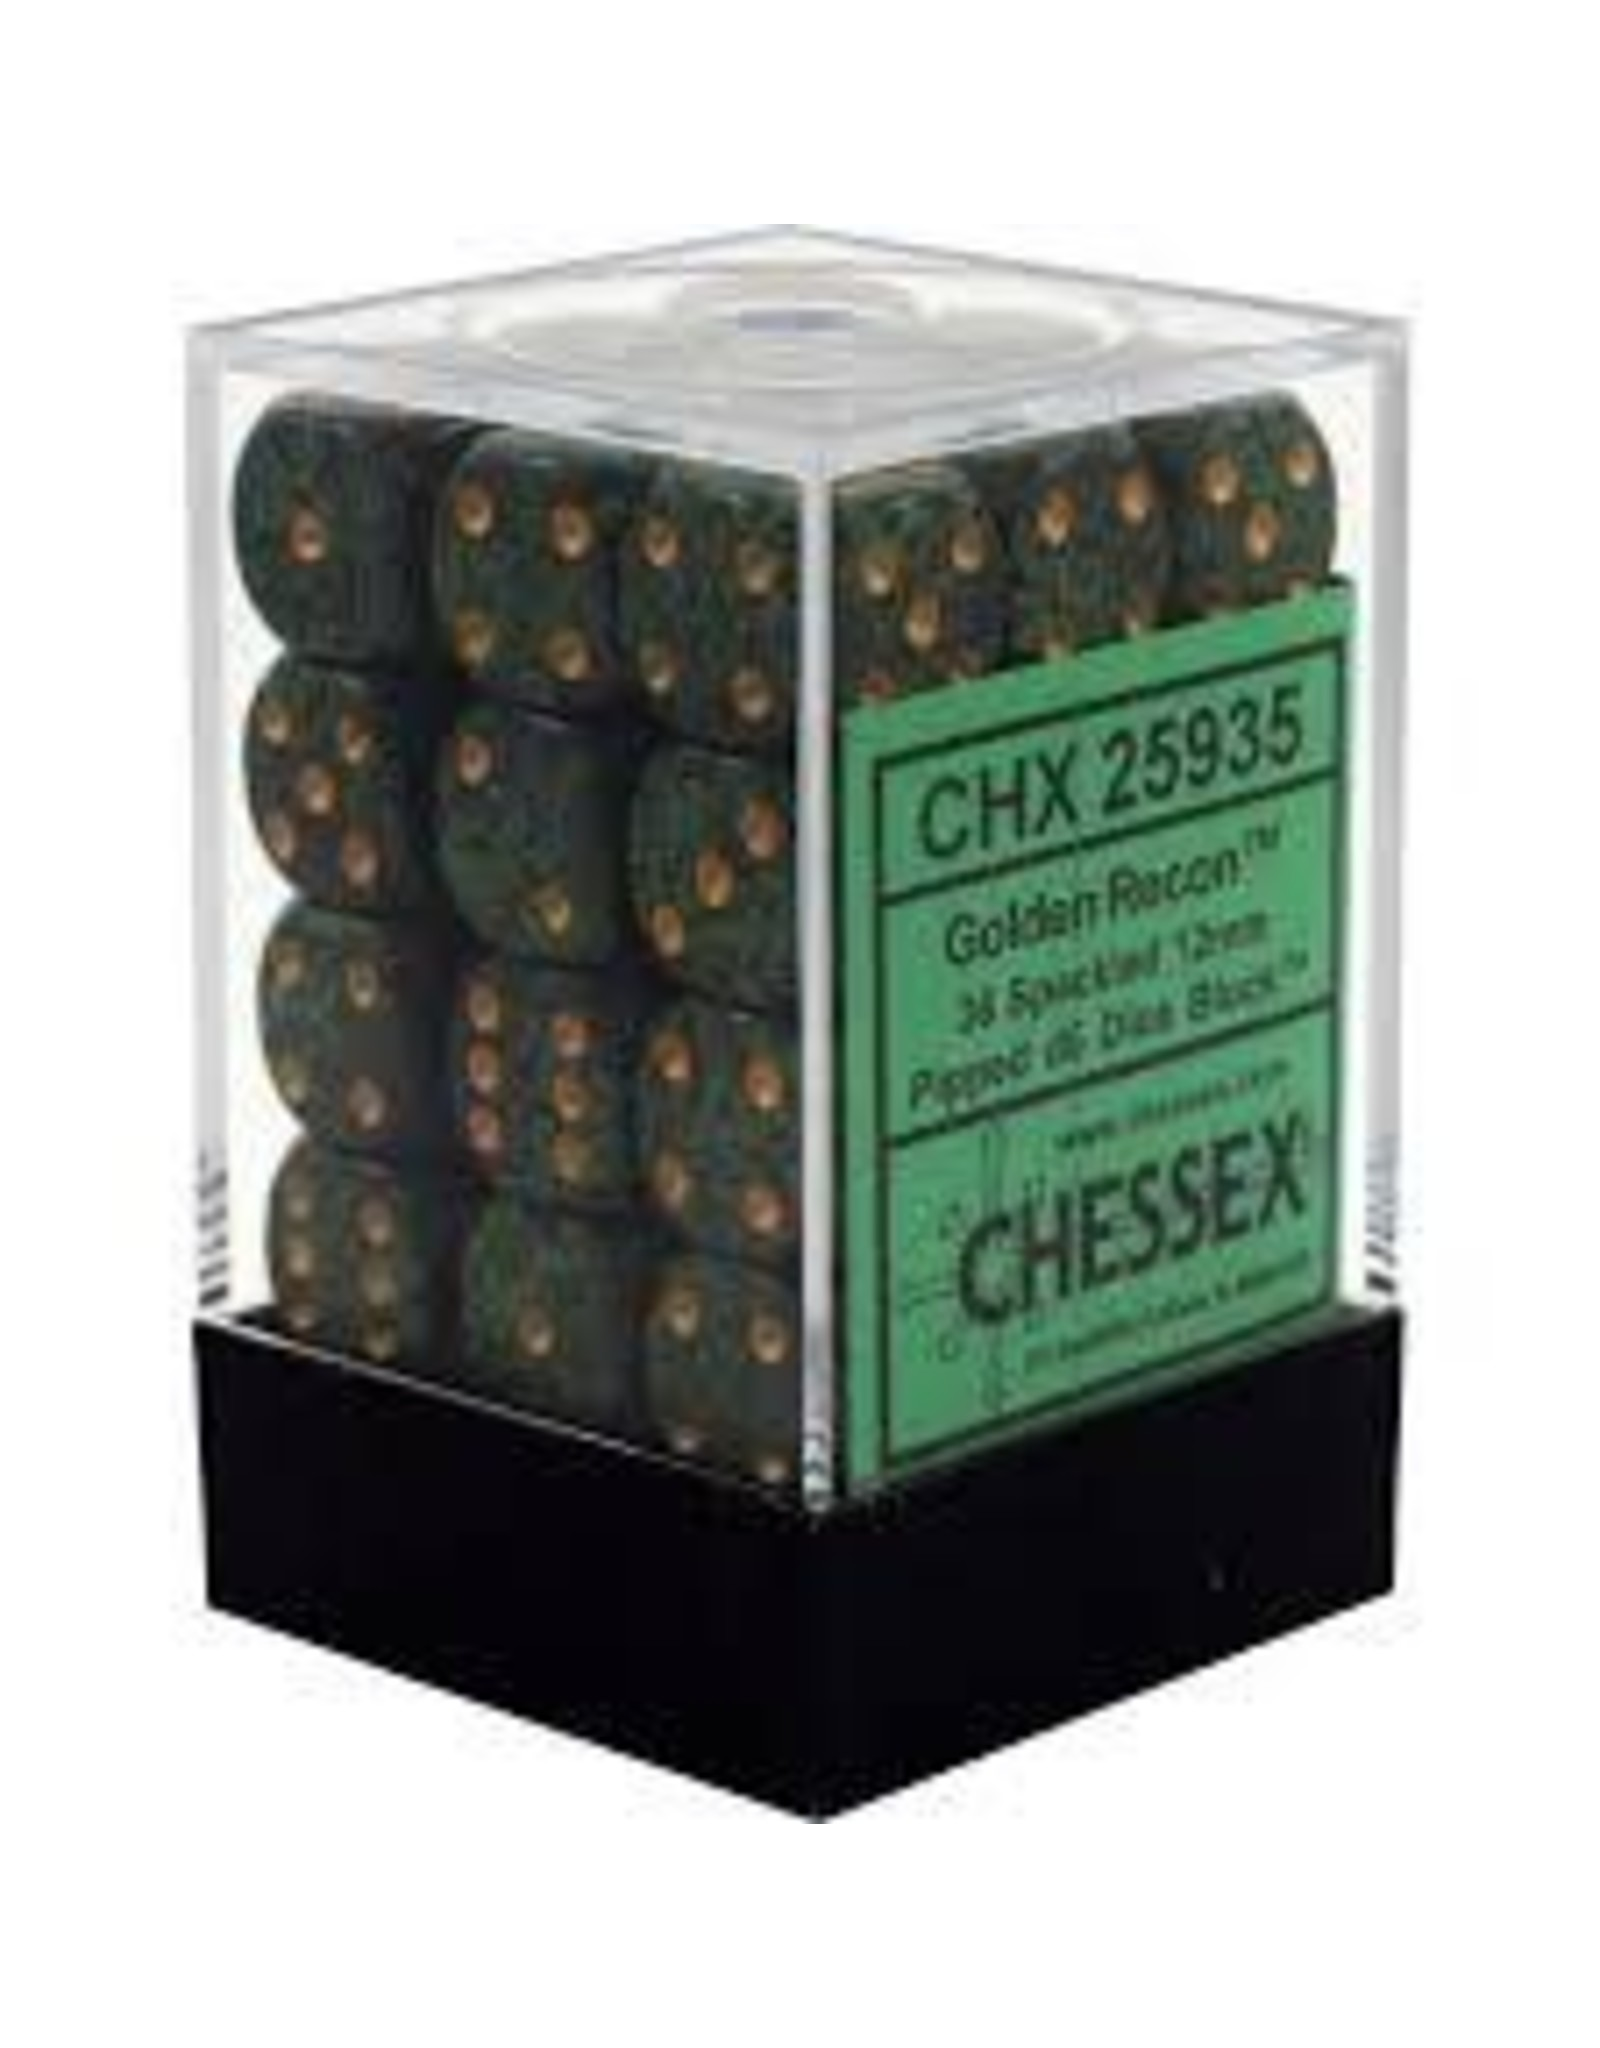 CHESSEX CHX 25935 12MM D6 DICE BLOCK SPECKLED GOLDEN RECON